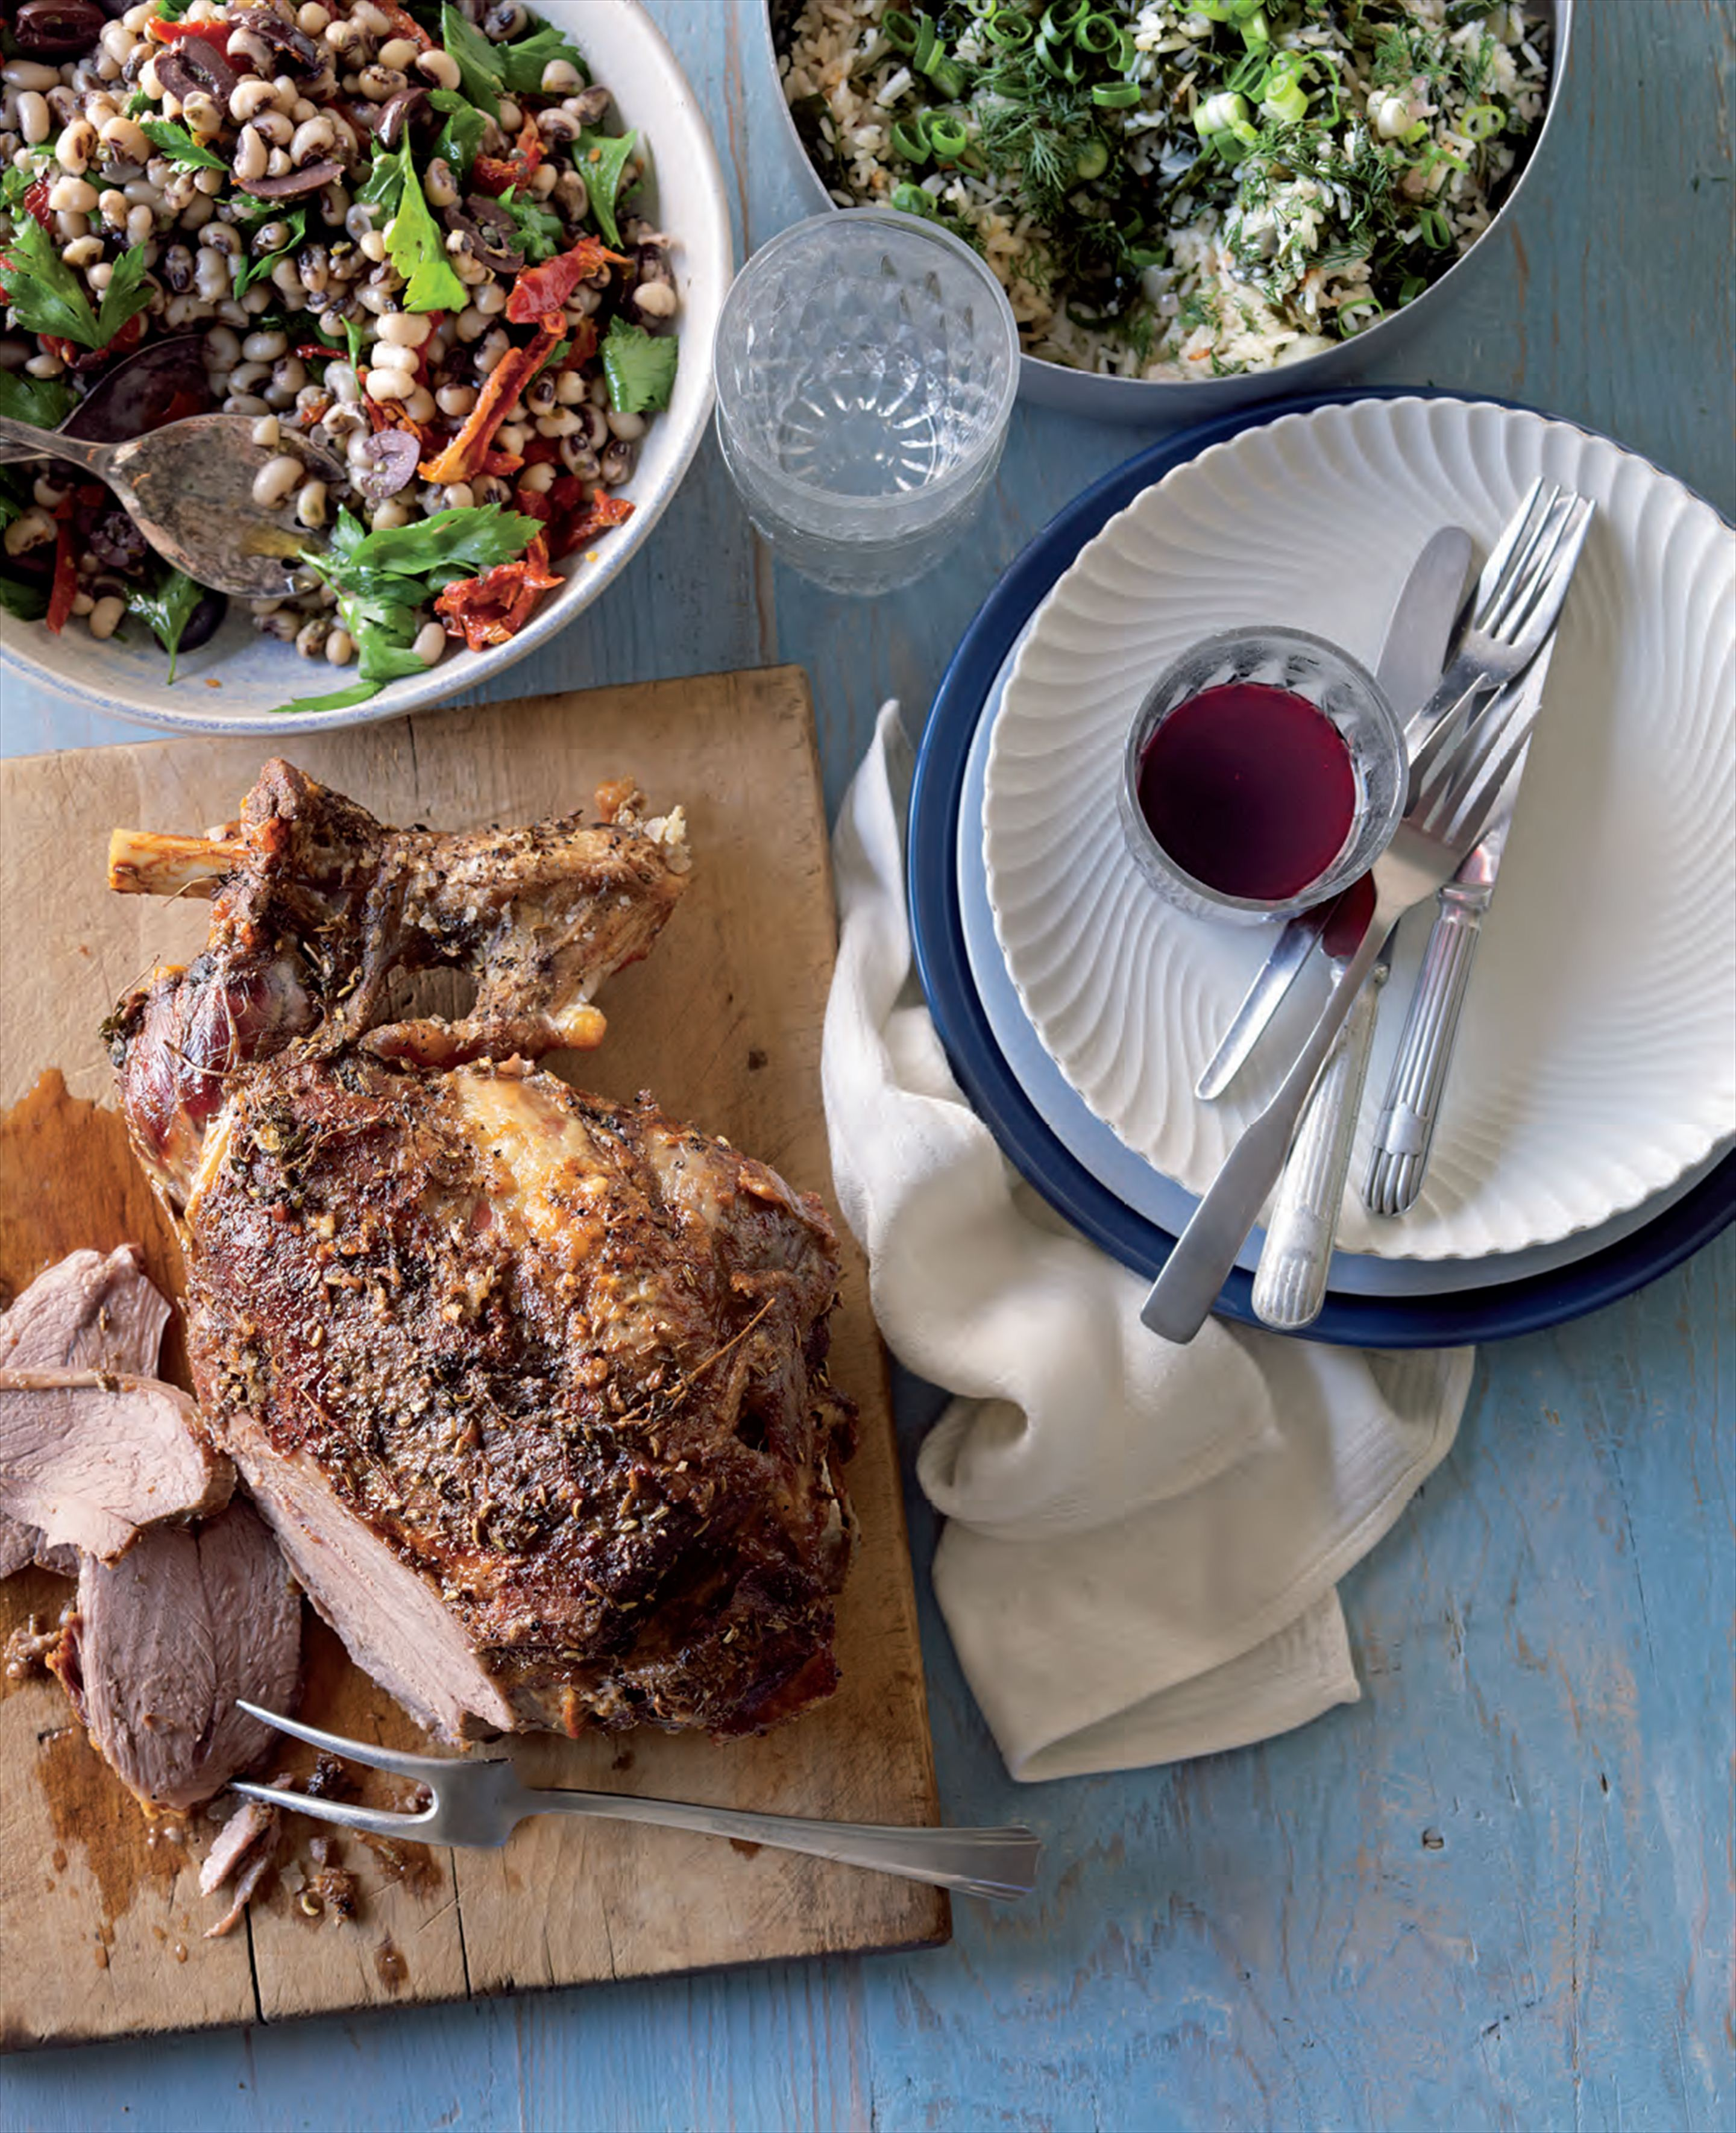 Slow-roasted lamb with salad of black-eyed peas and herbs